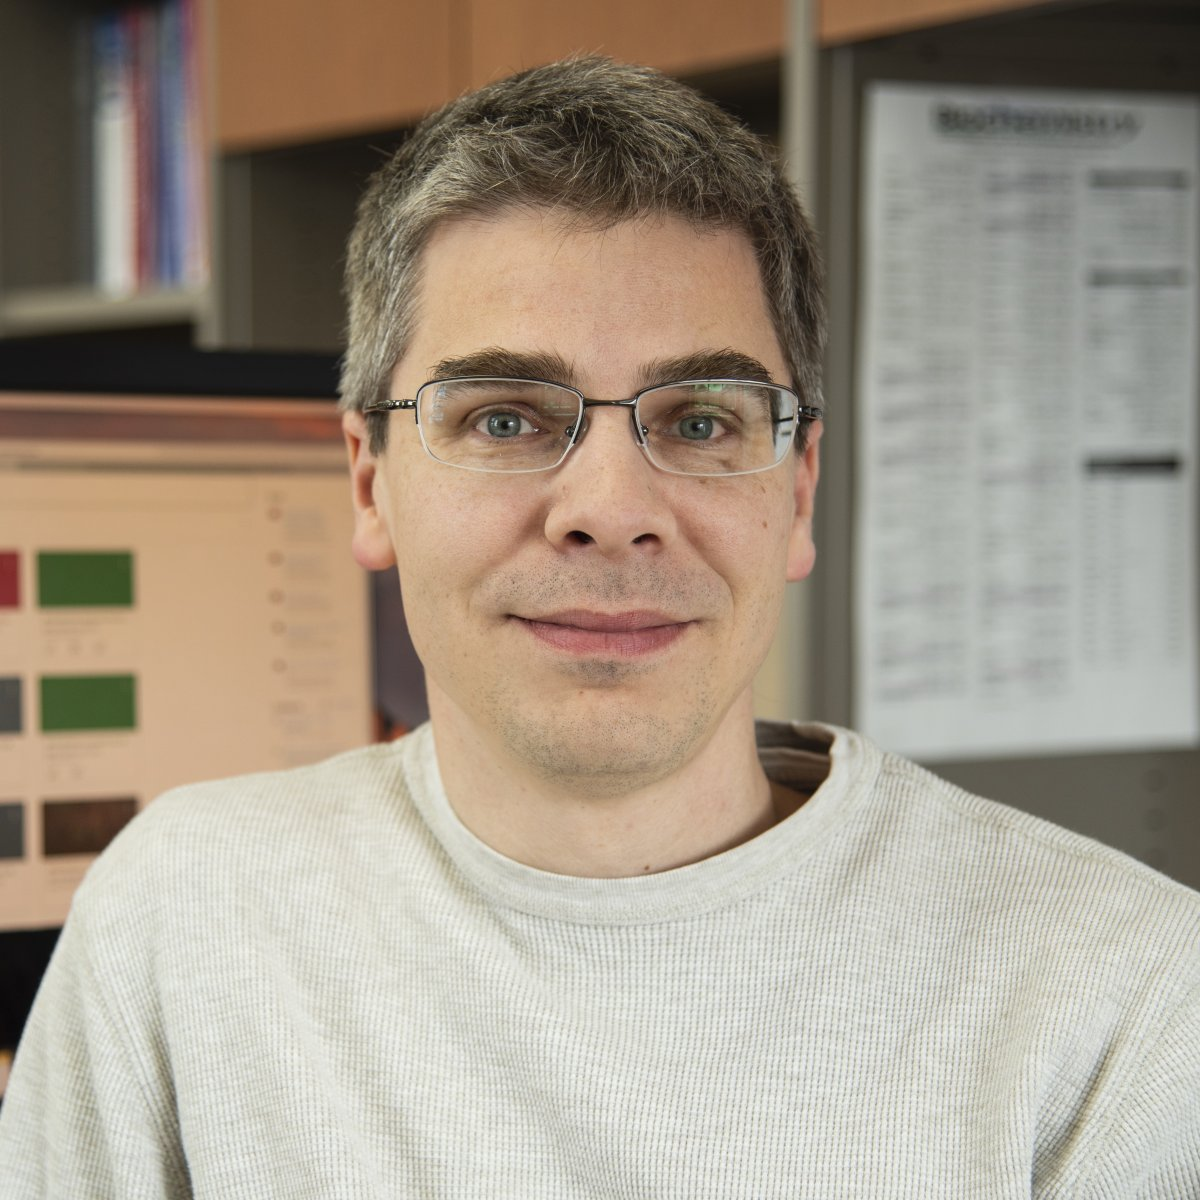 Biochemistry faculty associate Mario Pennella